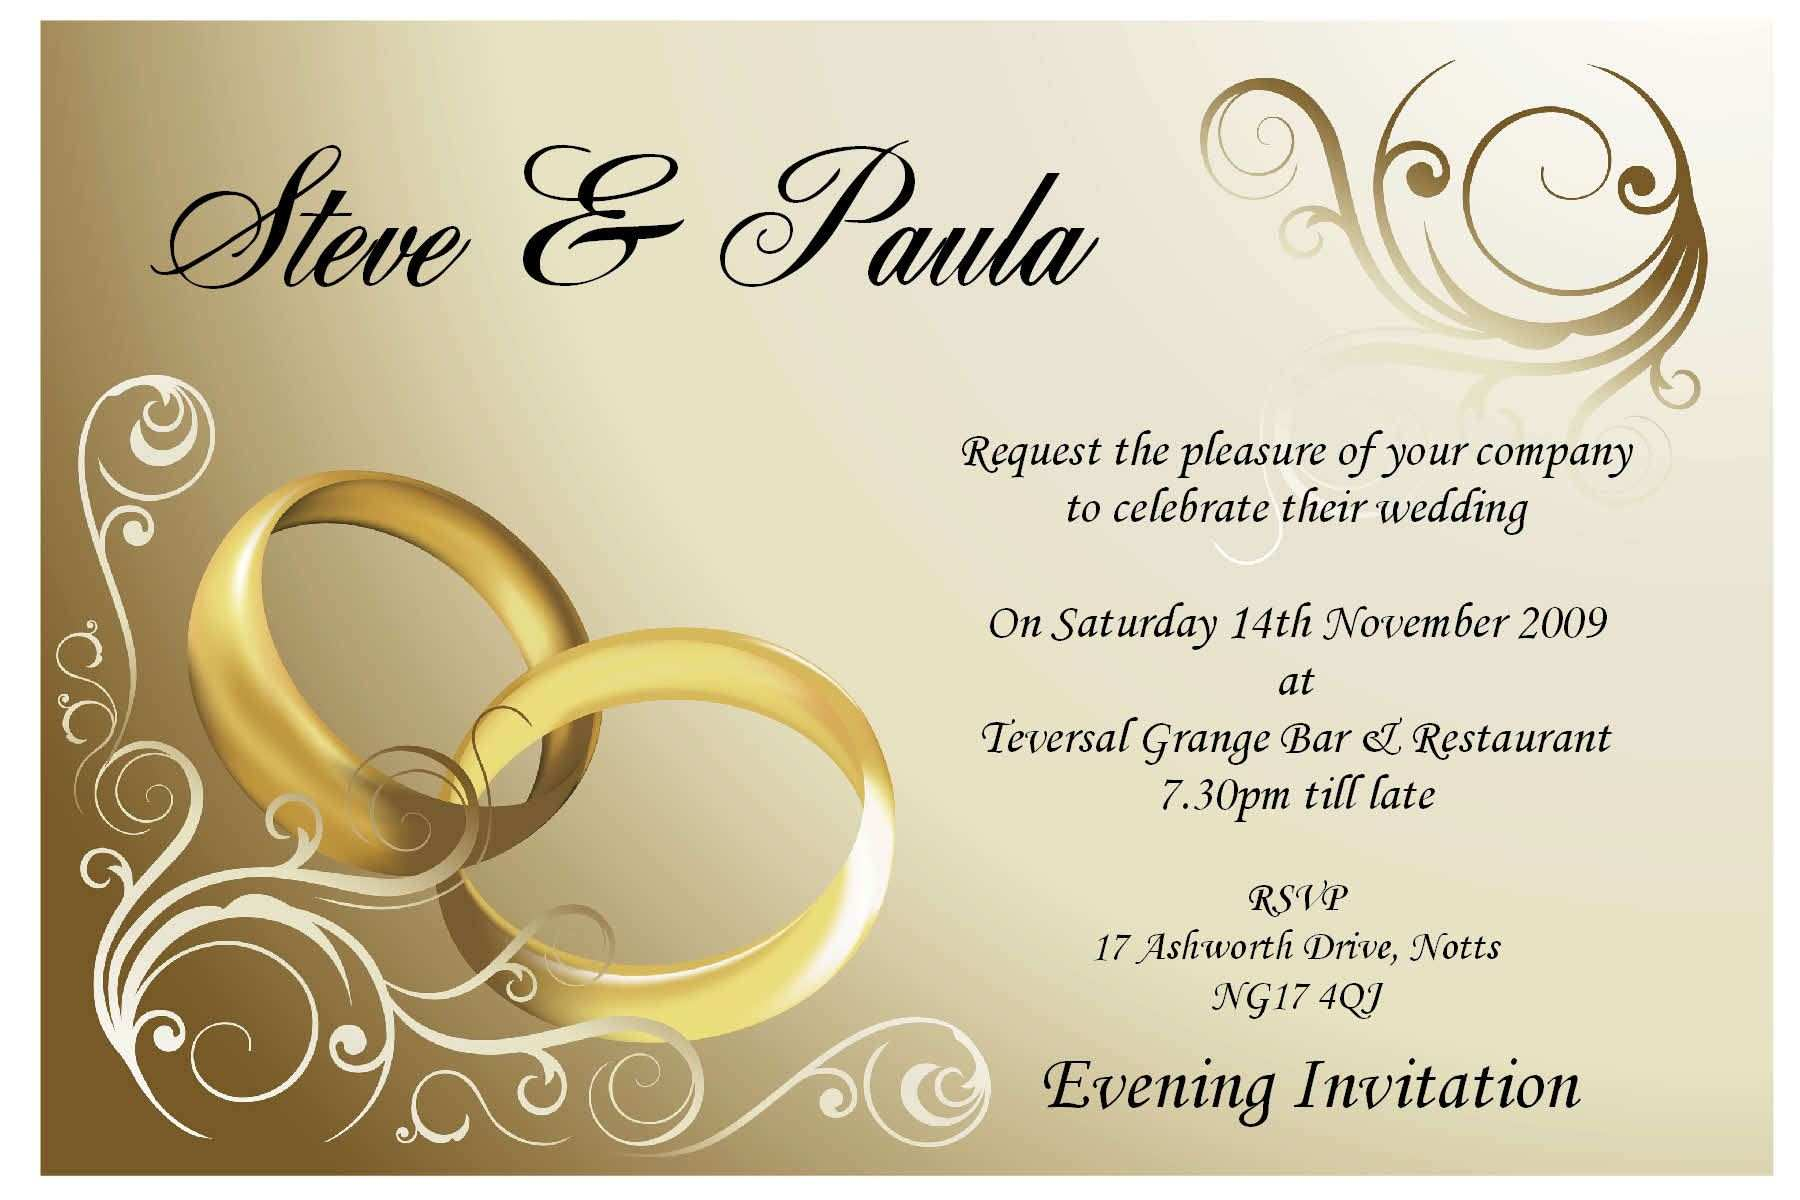 5 Customize Invitation Card Wedding Example in Photoshop by